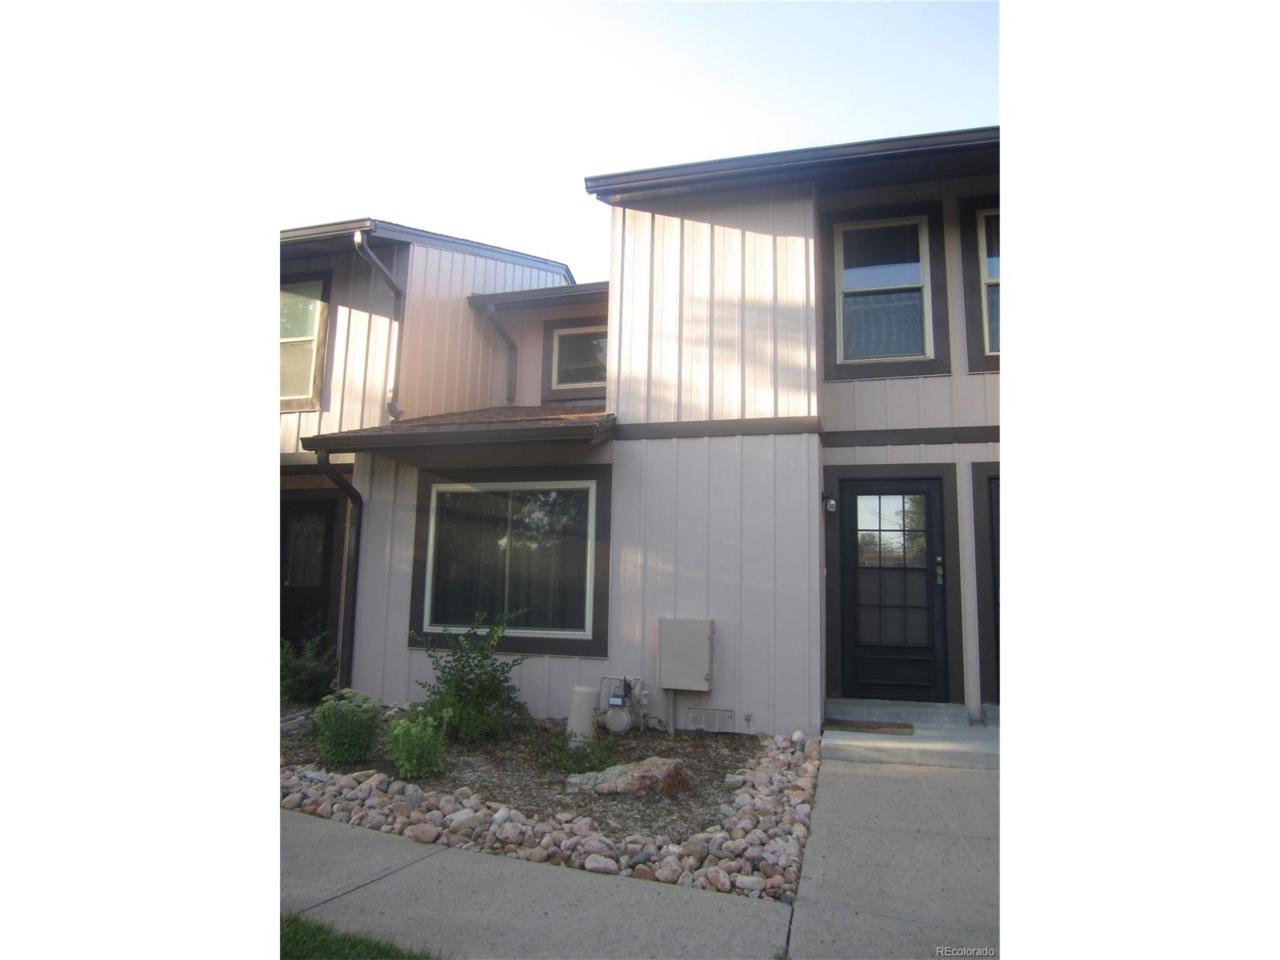 16025 E Ithaca Place C, Aurora, CO 80013 (MLS #7512980) :: 8z Real Estate